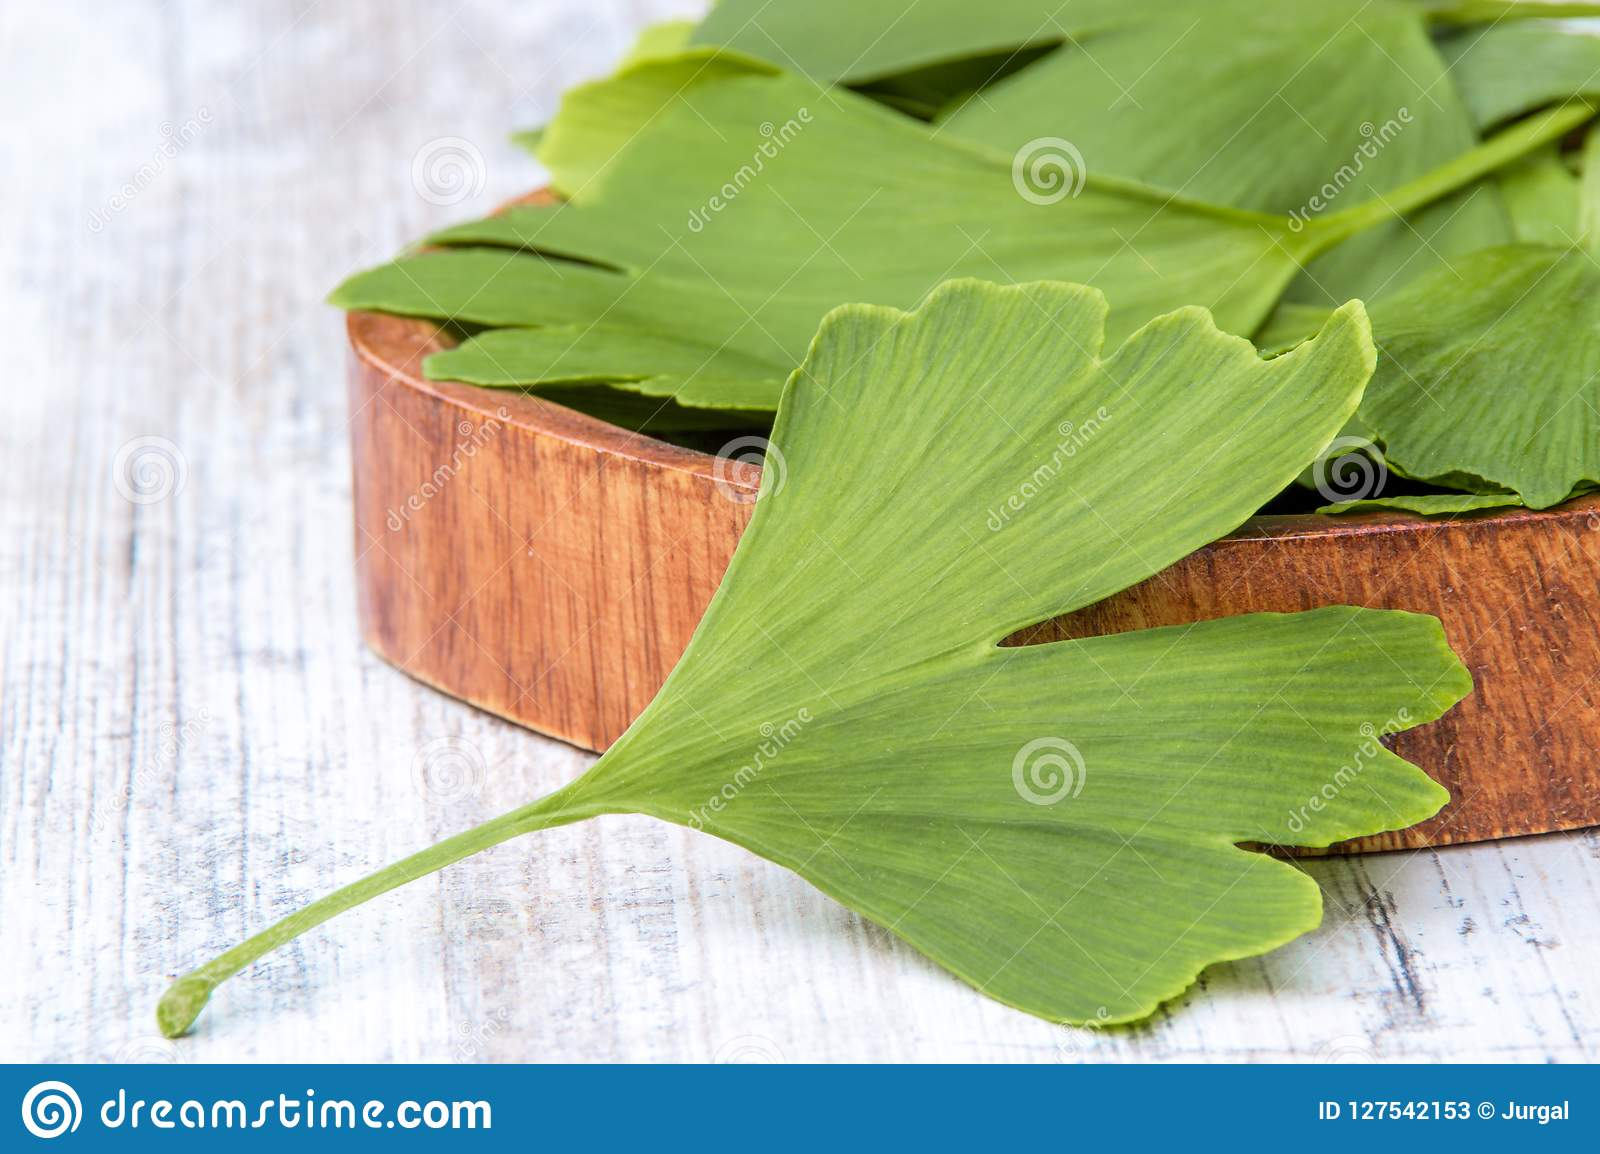 Collected medicinal leaves of the Ginkgo biloba tree in a bowl on the table wooden